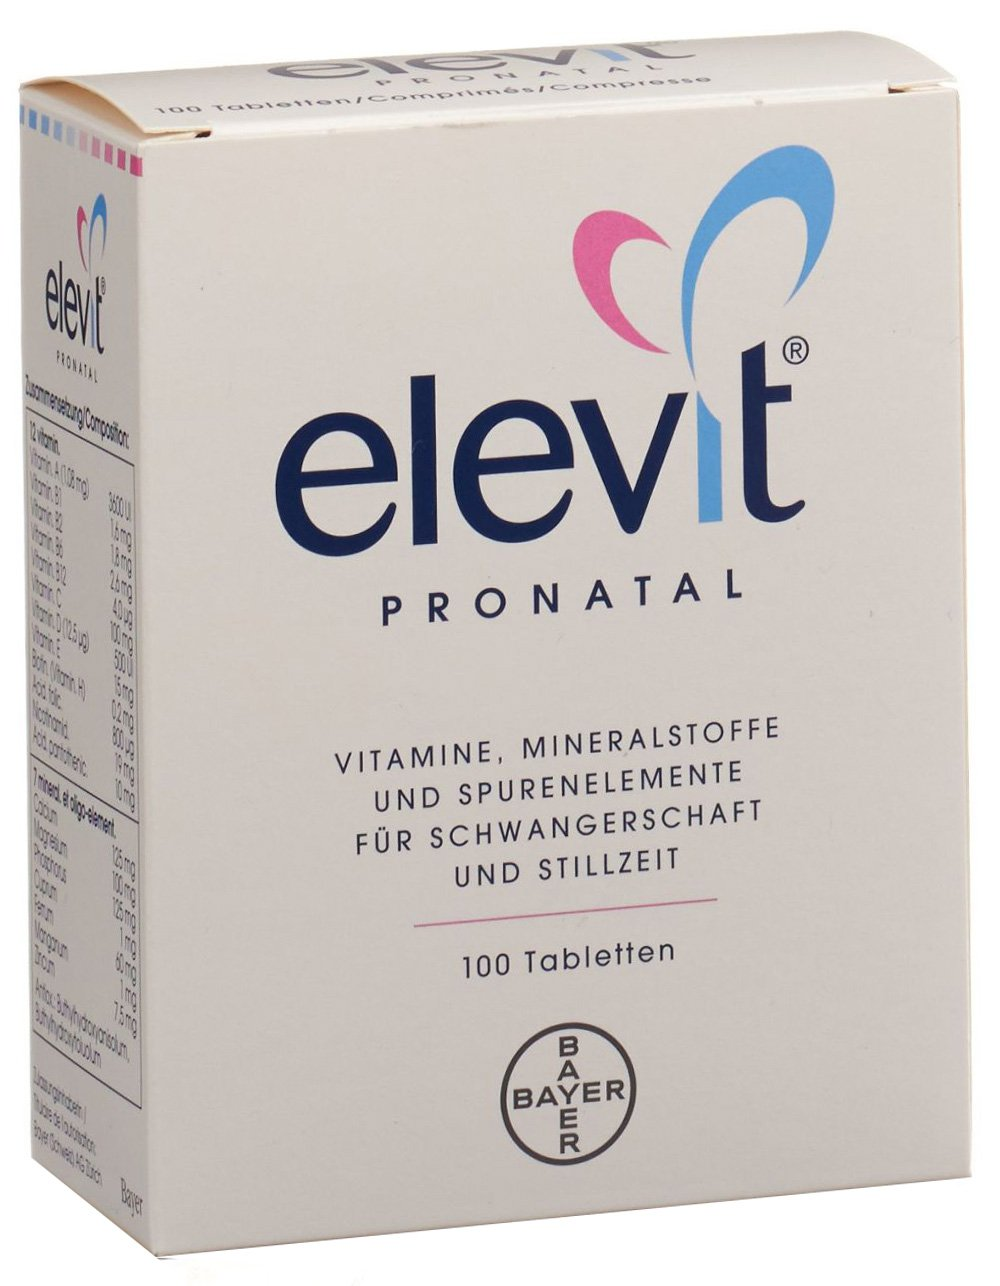 Vitamins Elevit Pronatal: composition, instructions for use, analogs and reviews 22